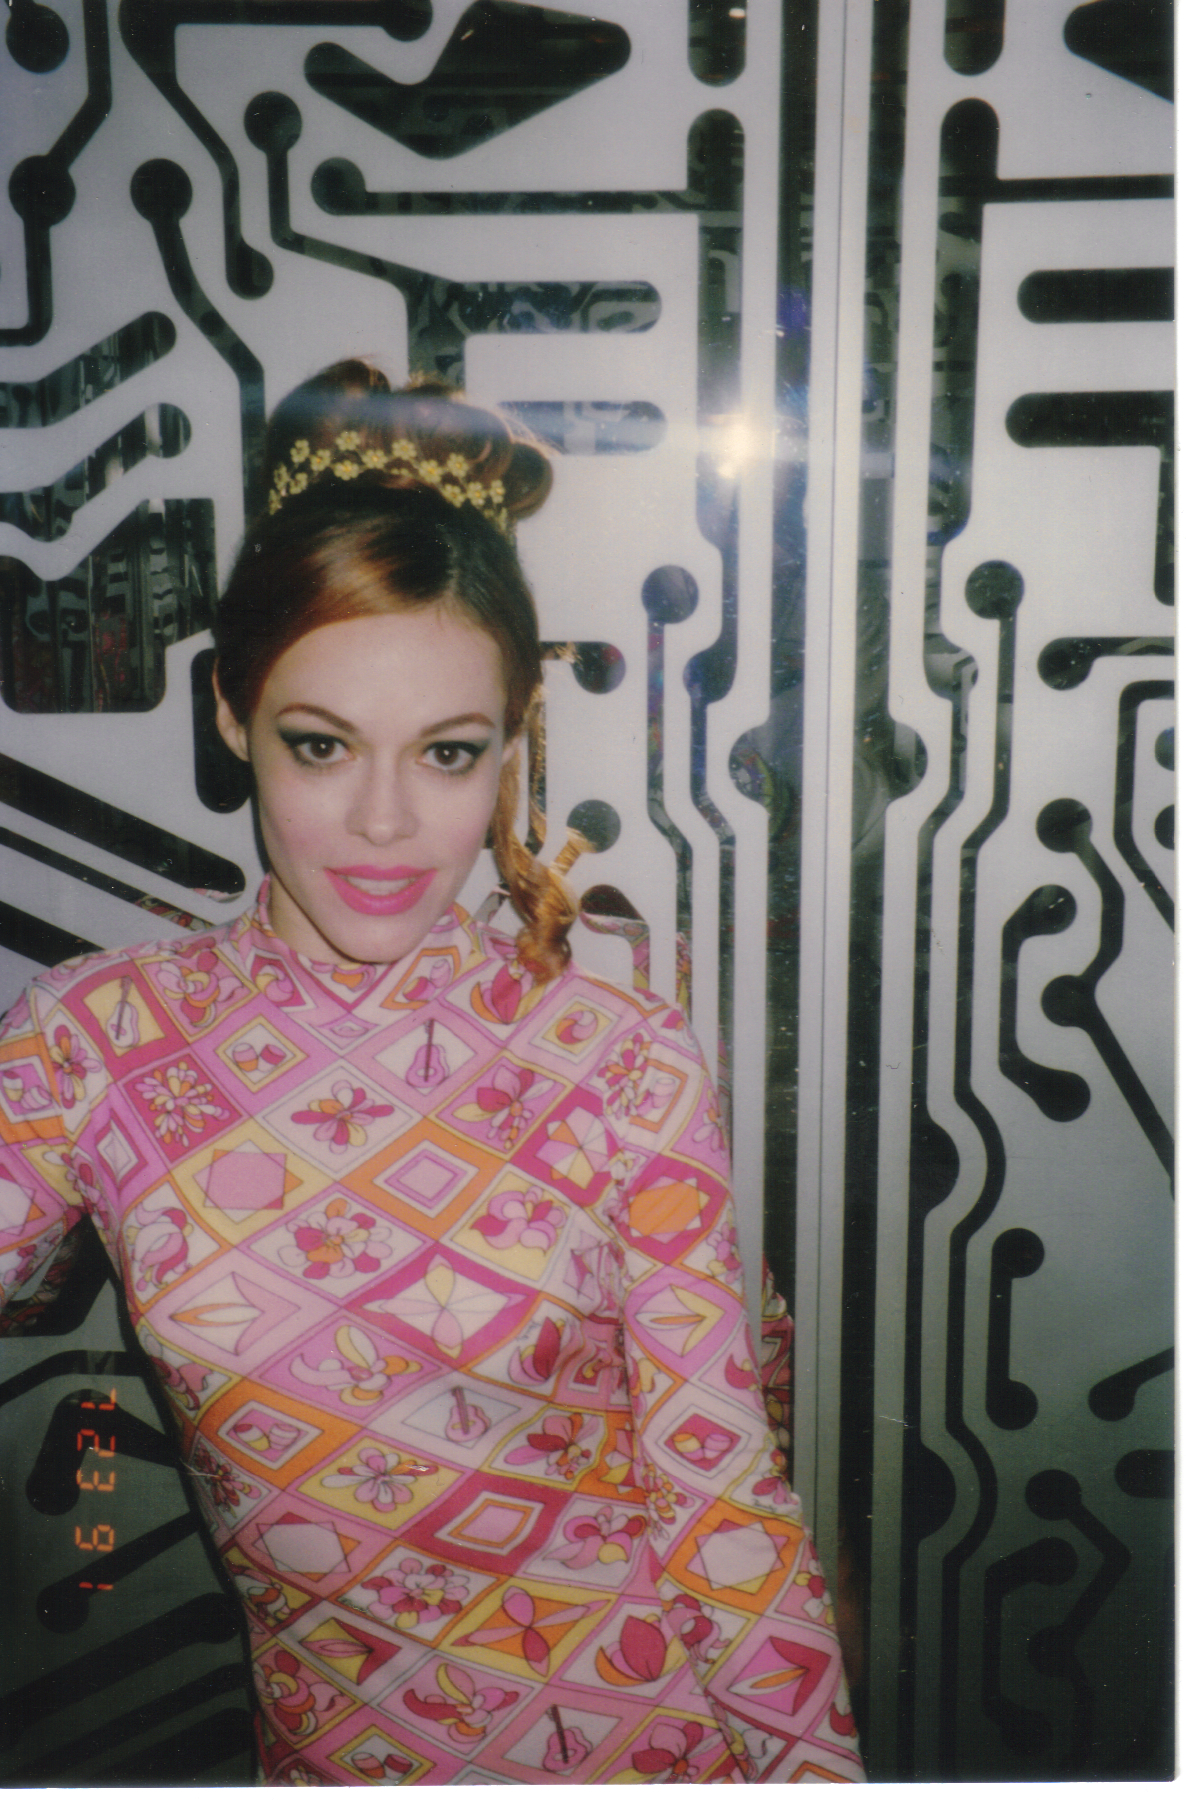 throwback set …..in a japanese elevator…going UP ! https://soundcloud.com/lady-miss-kier/dee-jay-lady-miss-kier-nu-acid